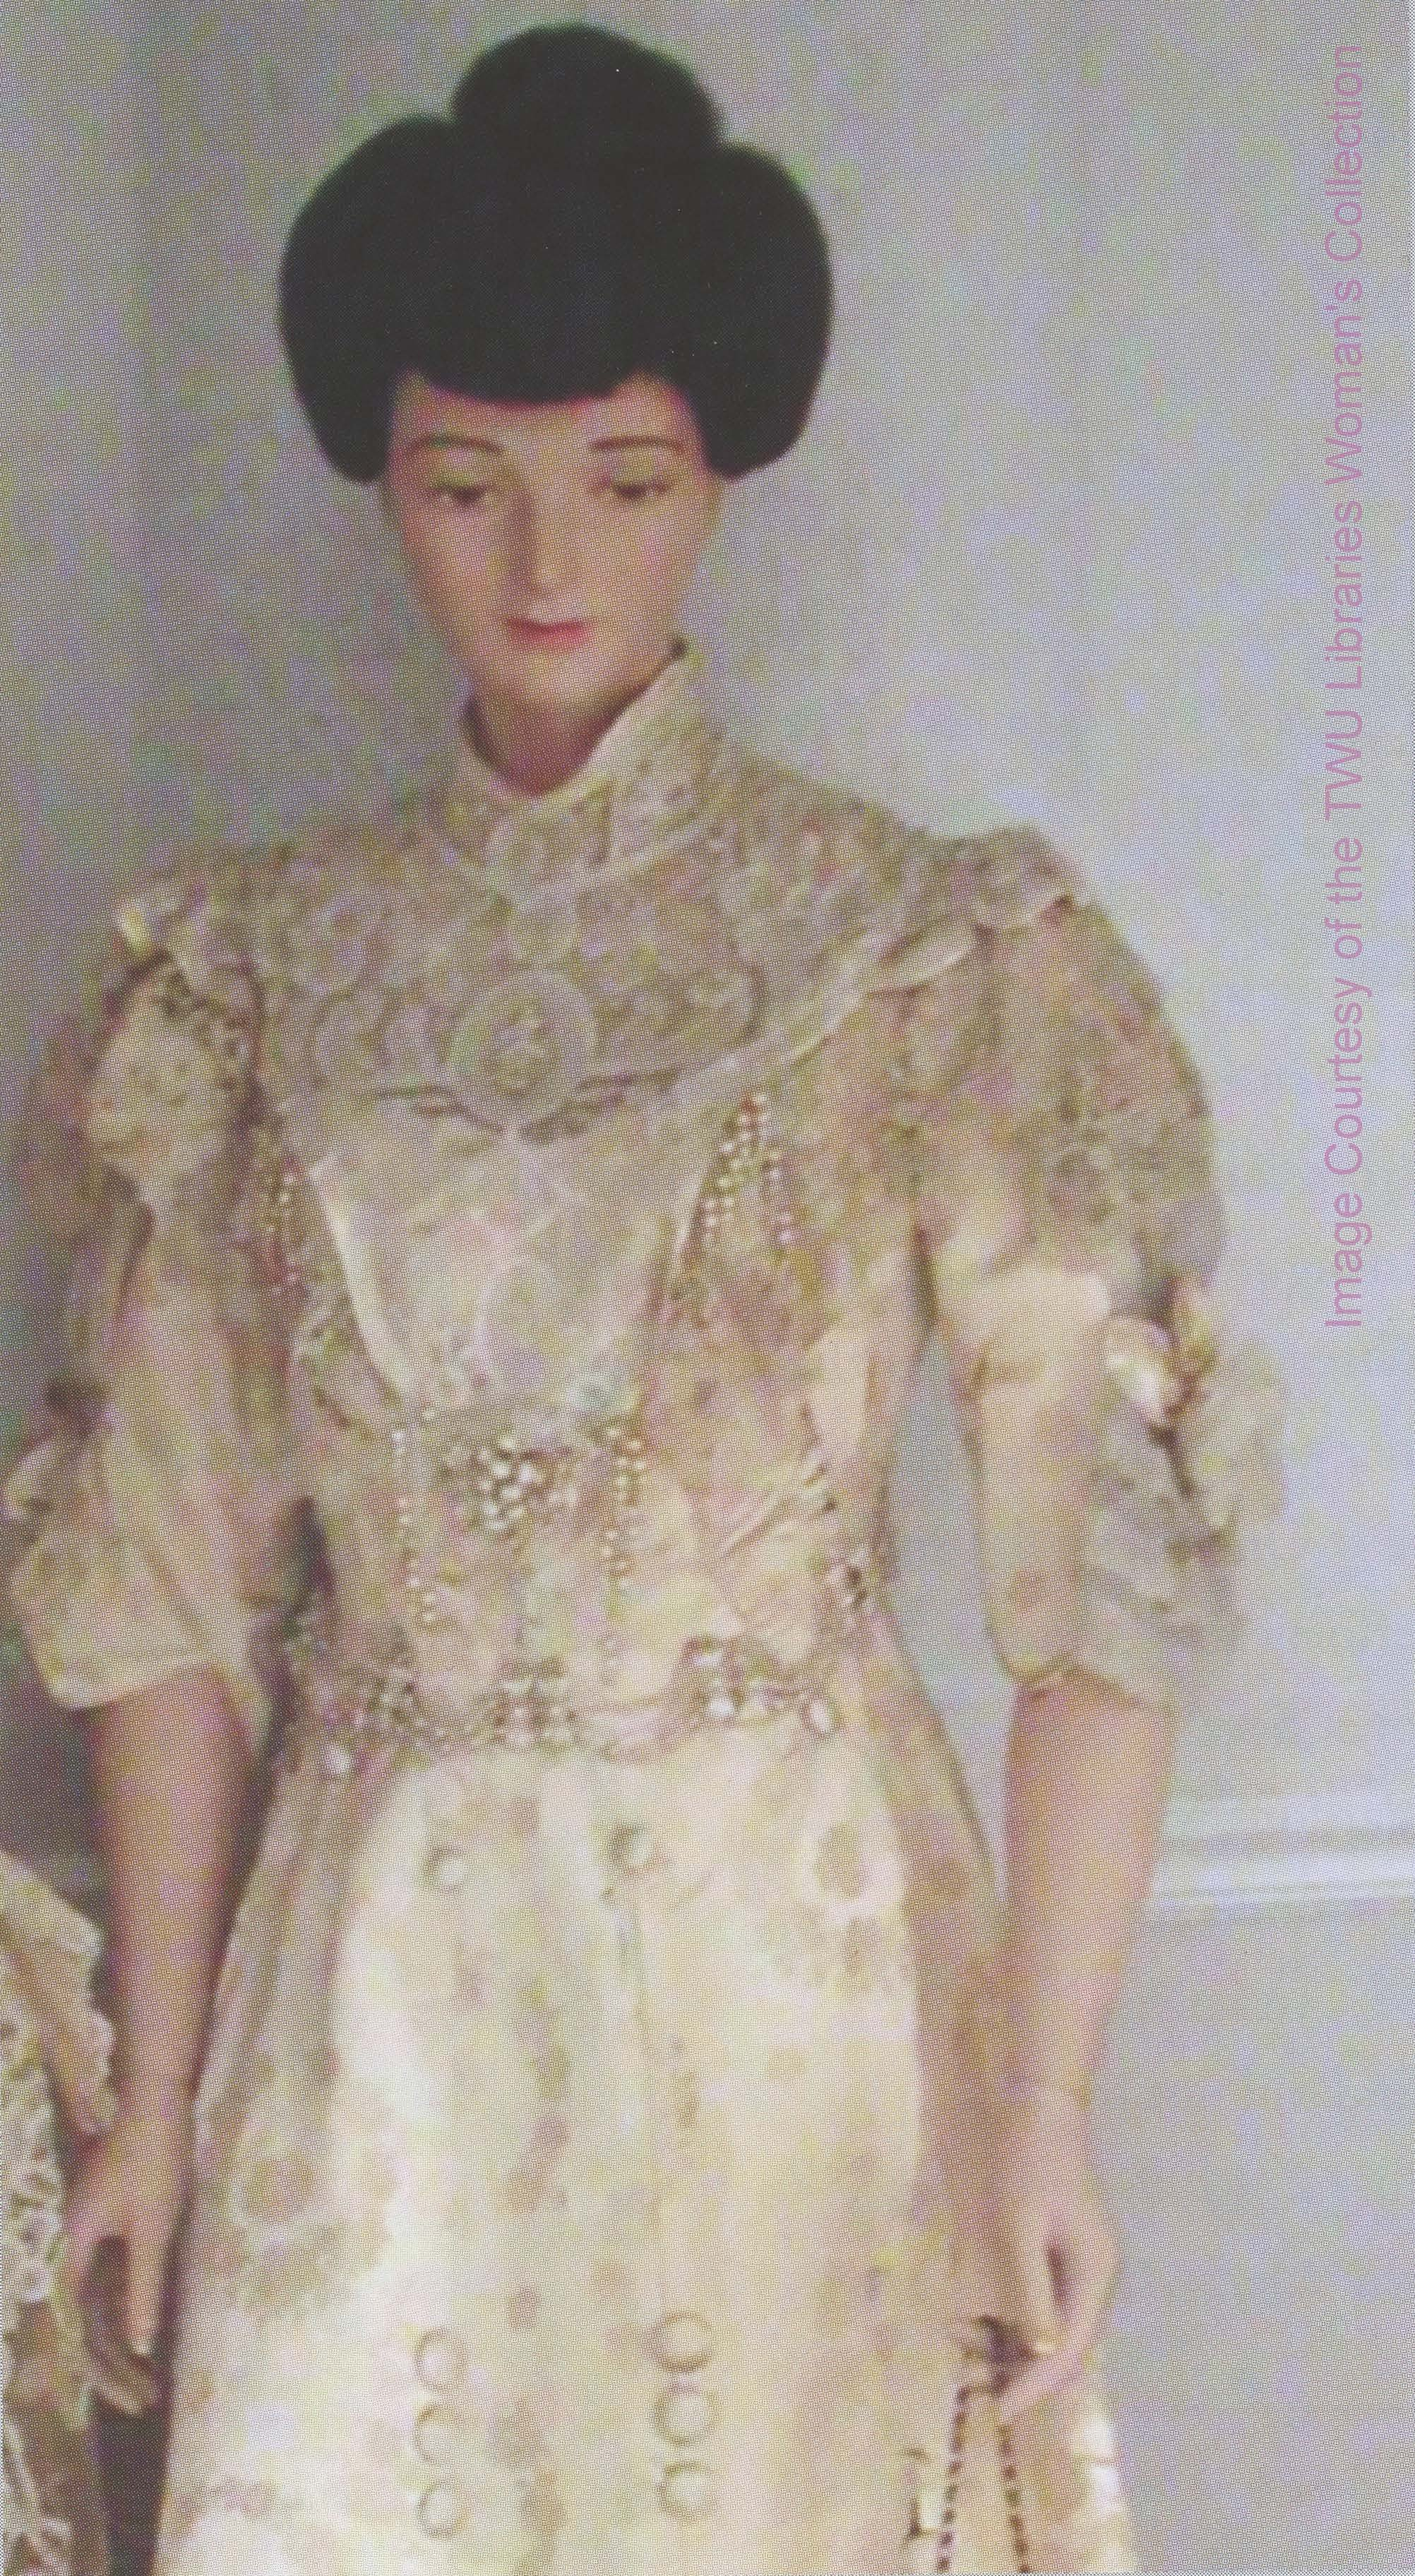 The Fannie Irene Bruner Campbell (1907-11) inaugural gown is made of white brocade satin, imported Duchess and rose point lace, and is in a remarkable state of preservation. Photo courtesy of the Woman's Collection, TWU.